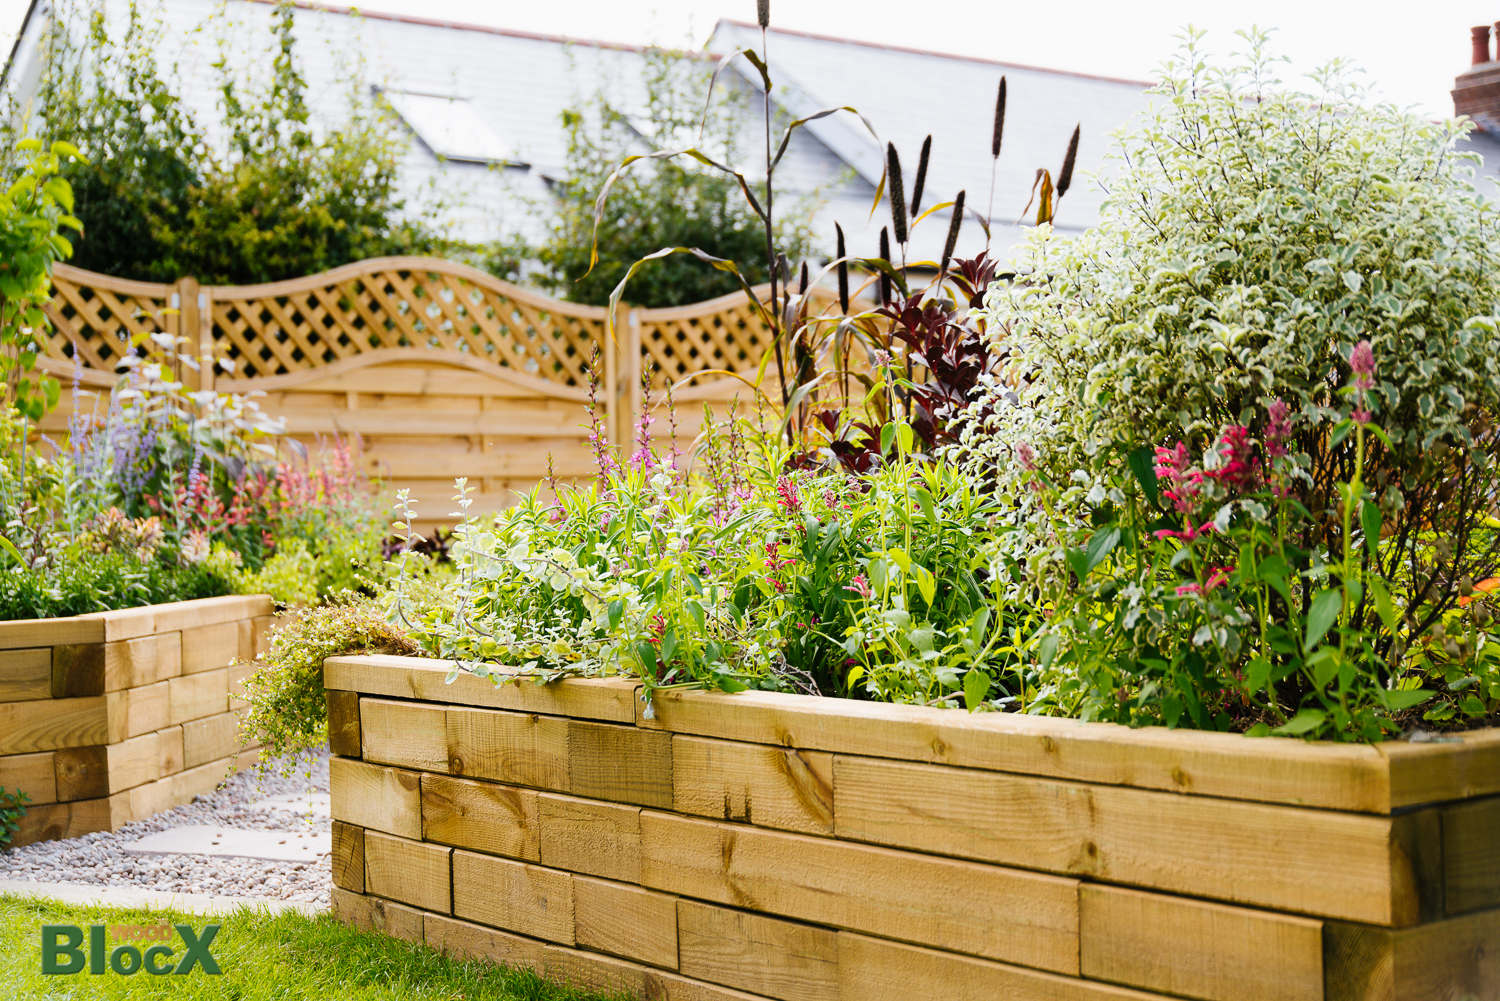 Plan your dream garden with the help of WoodBlocX. - WoodBlocX